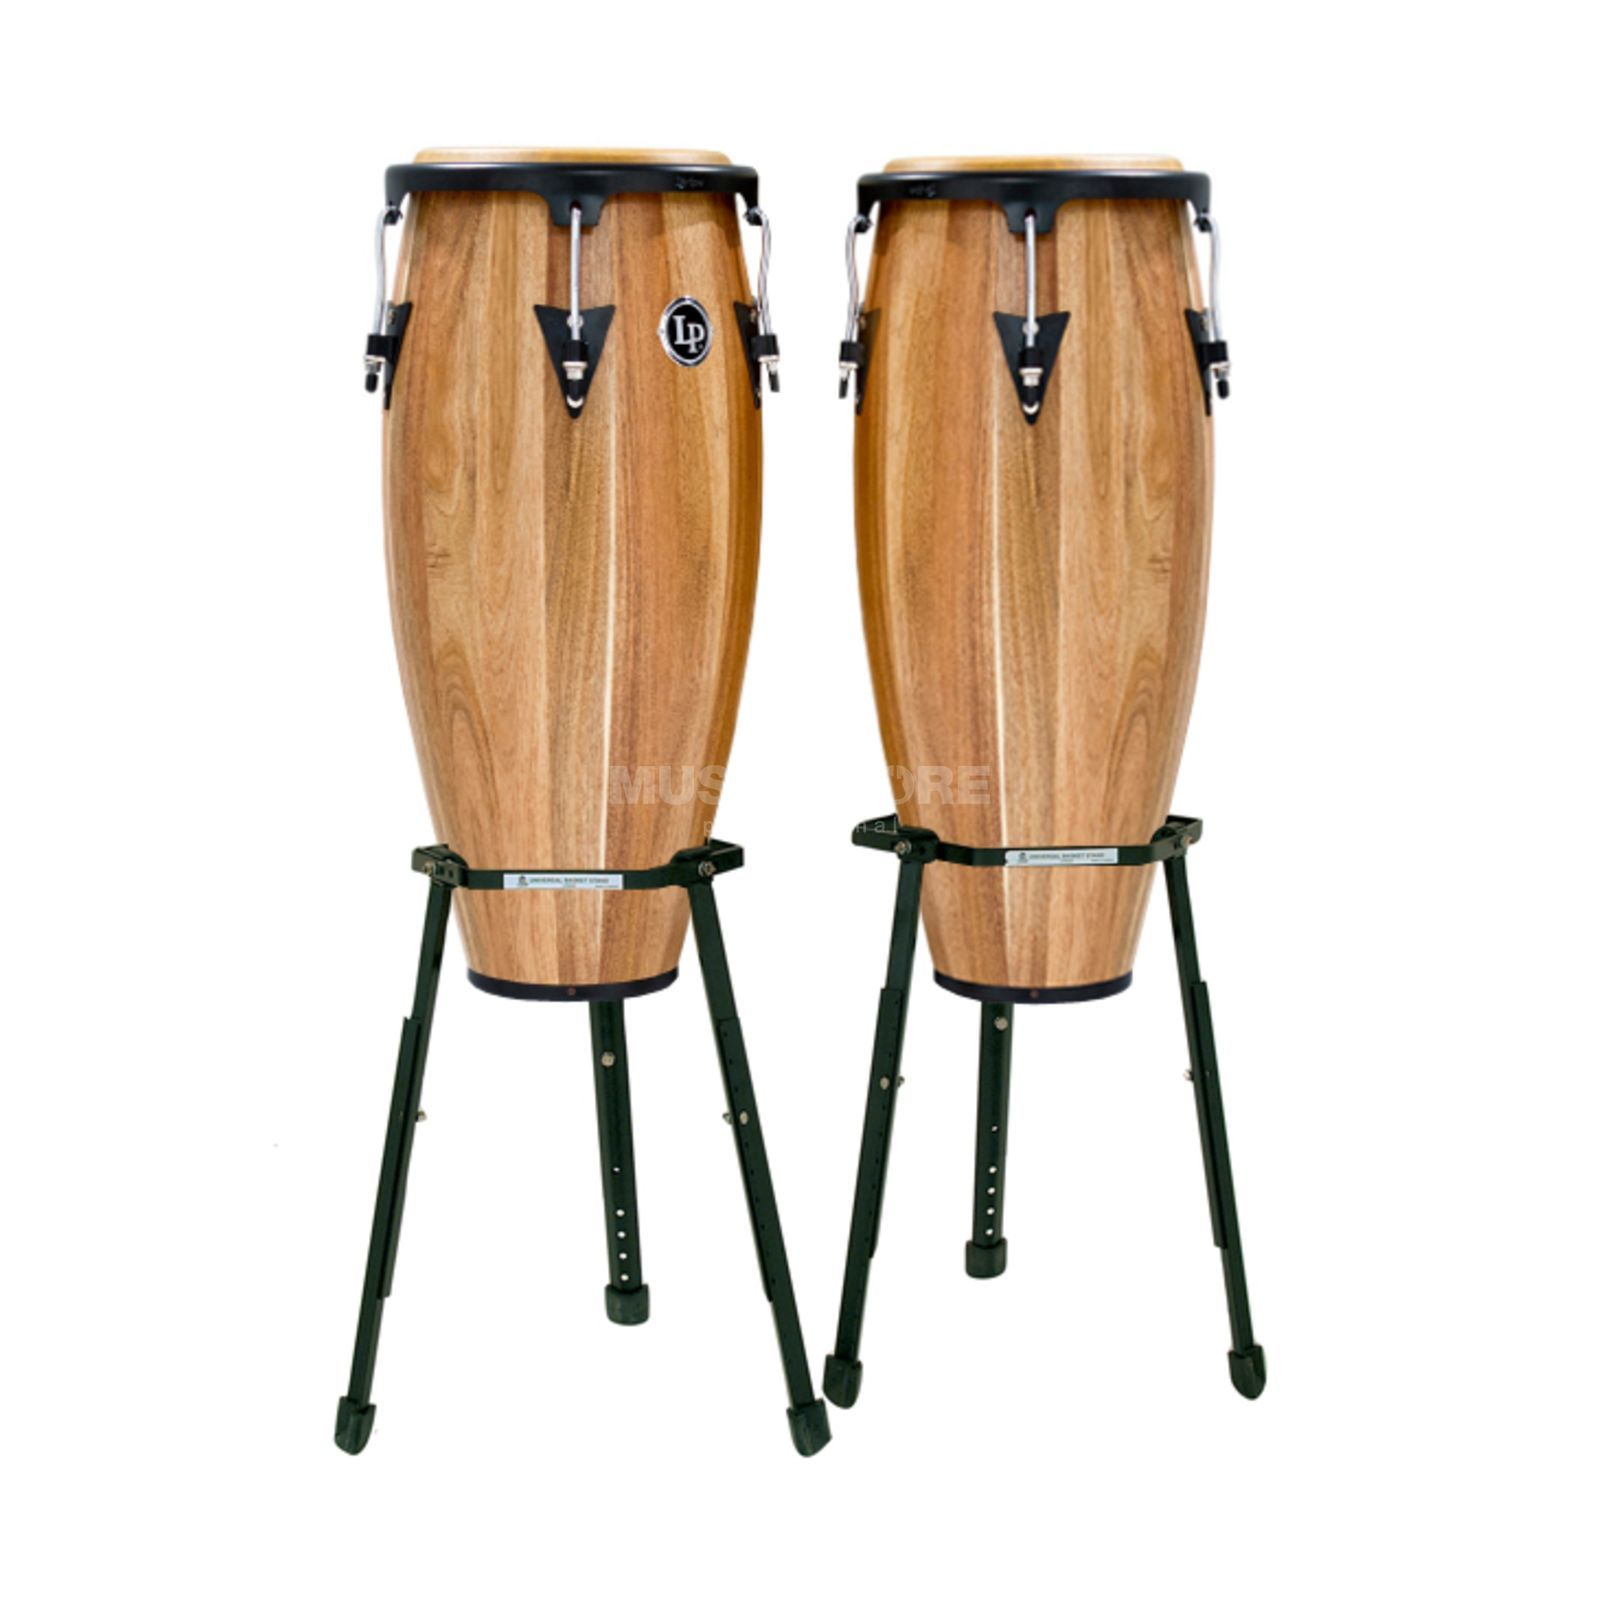 "Latin Percussion Aspire Conga Set LPA646B-SW, 10"" & 11"", Walnut Produktbild"